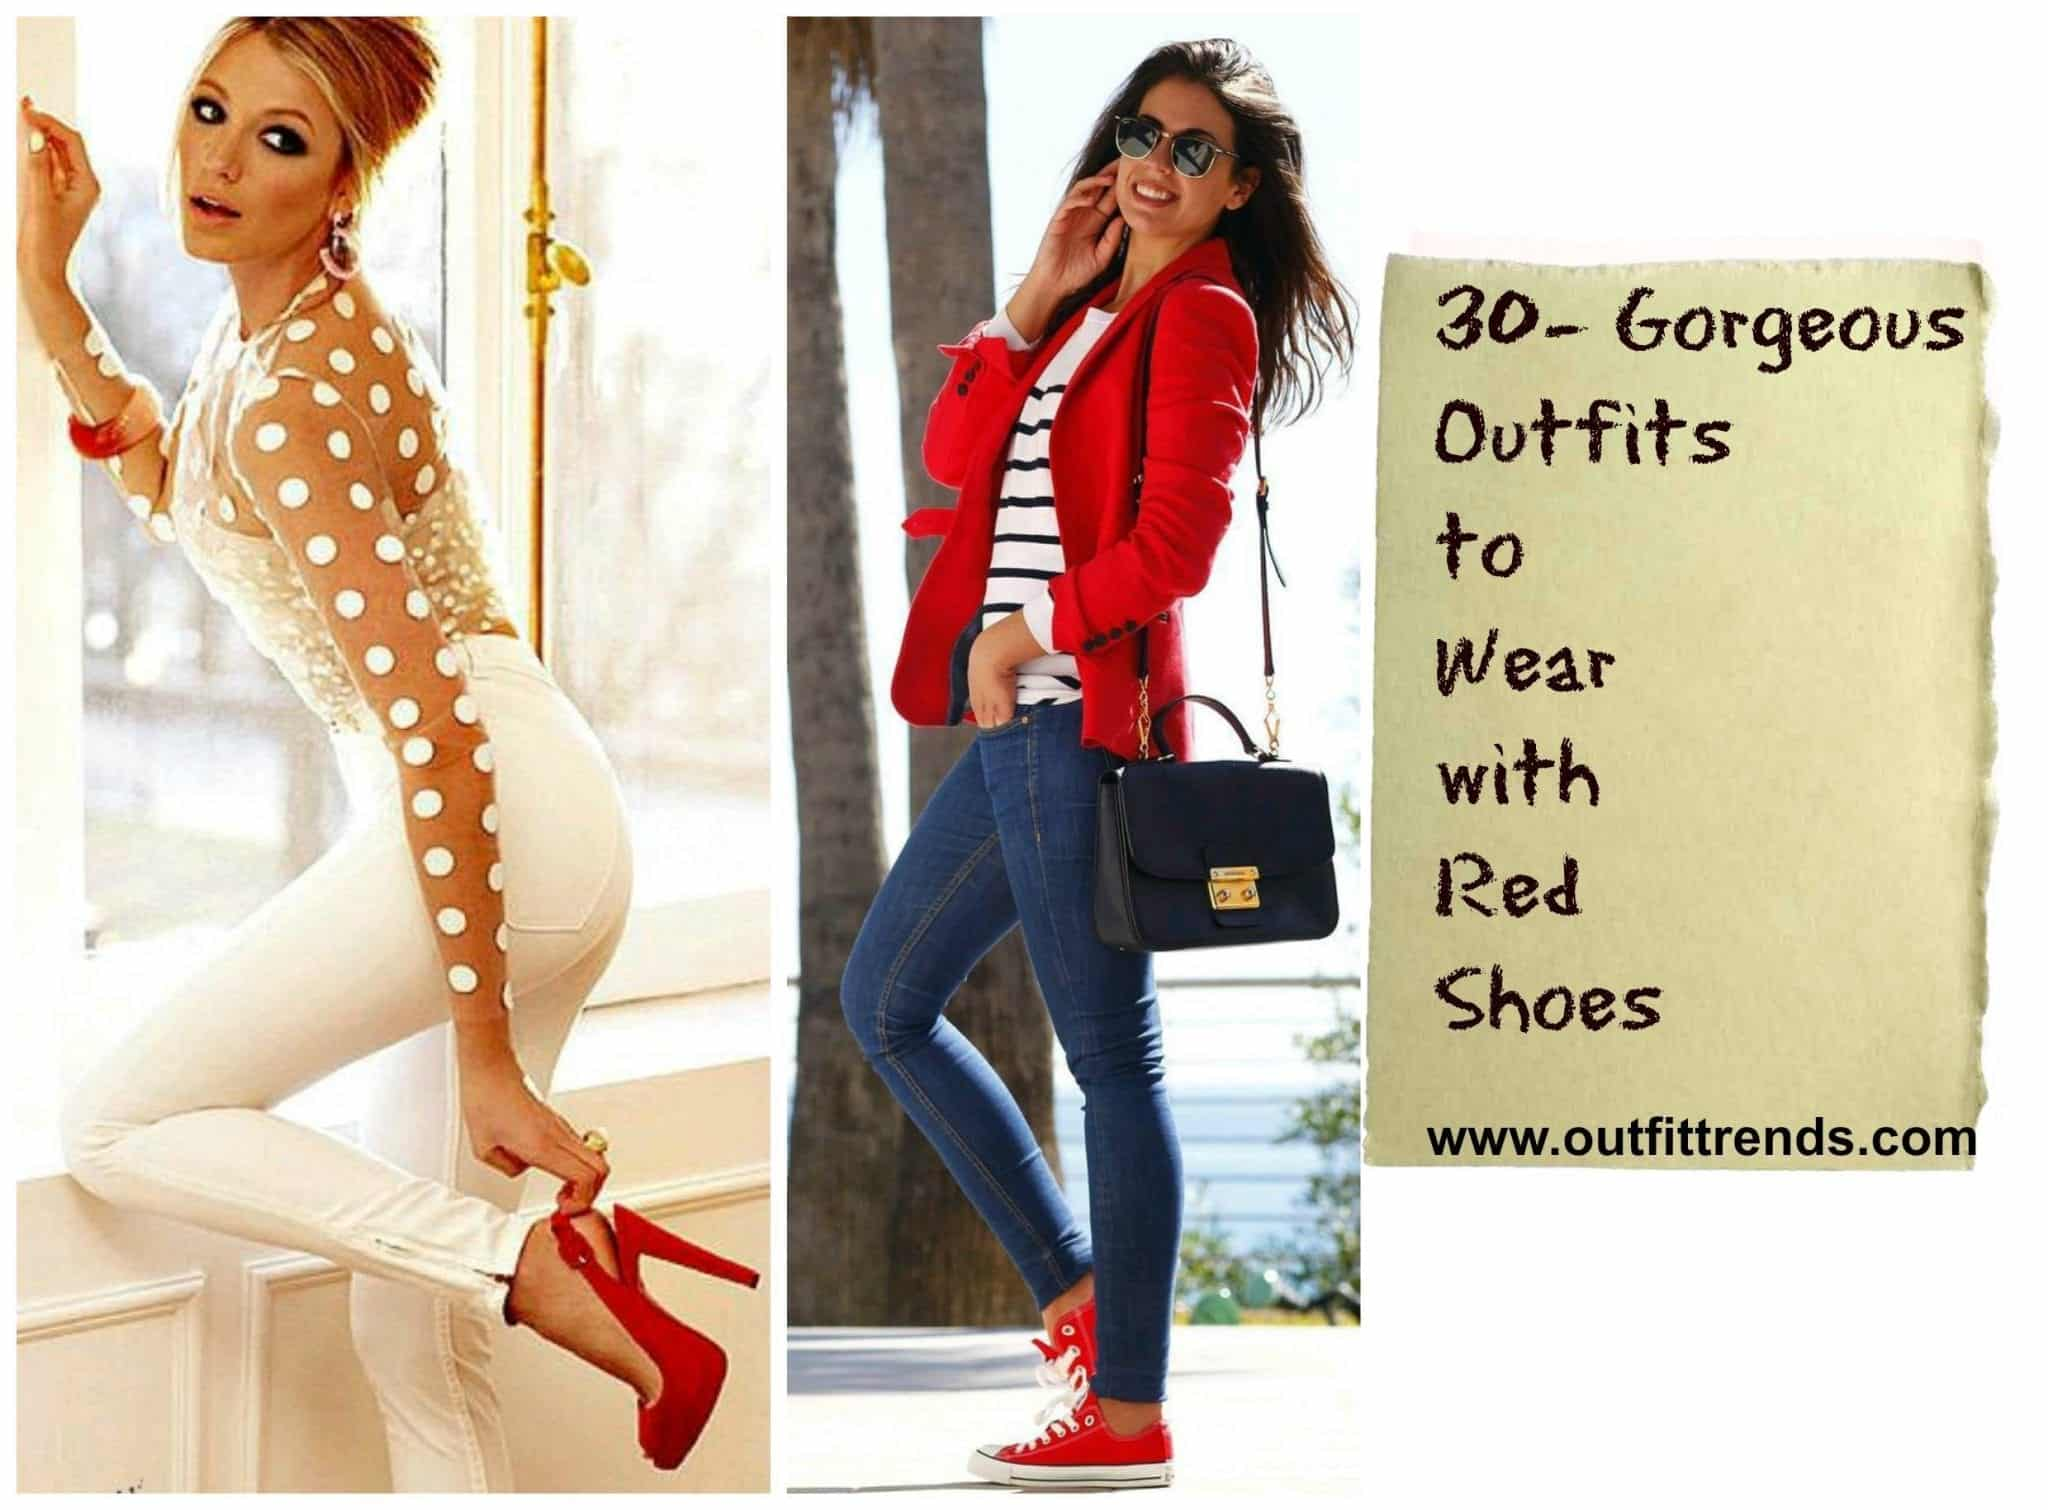 f5af00070fe Women s Outfits with Red Shoes- 30 Outfits to Wear with Red Shoes